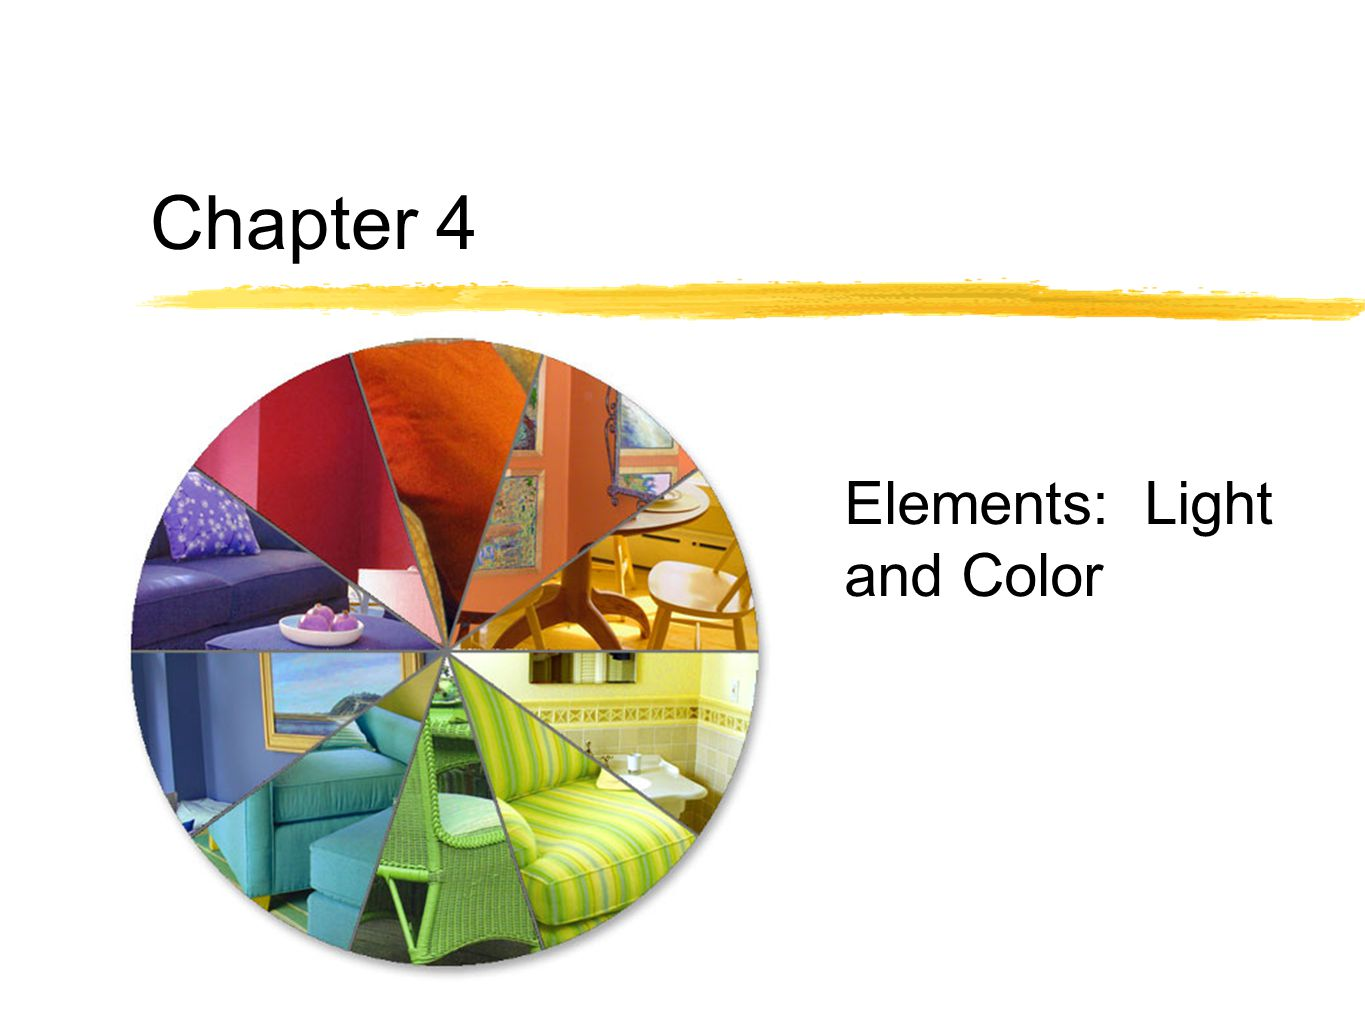 Chapter 4 Elements: Light and Color